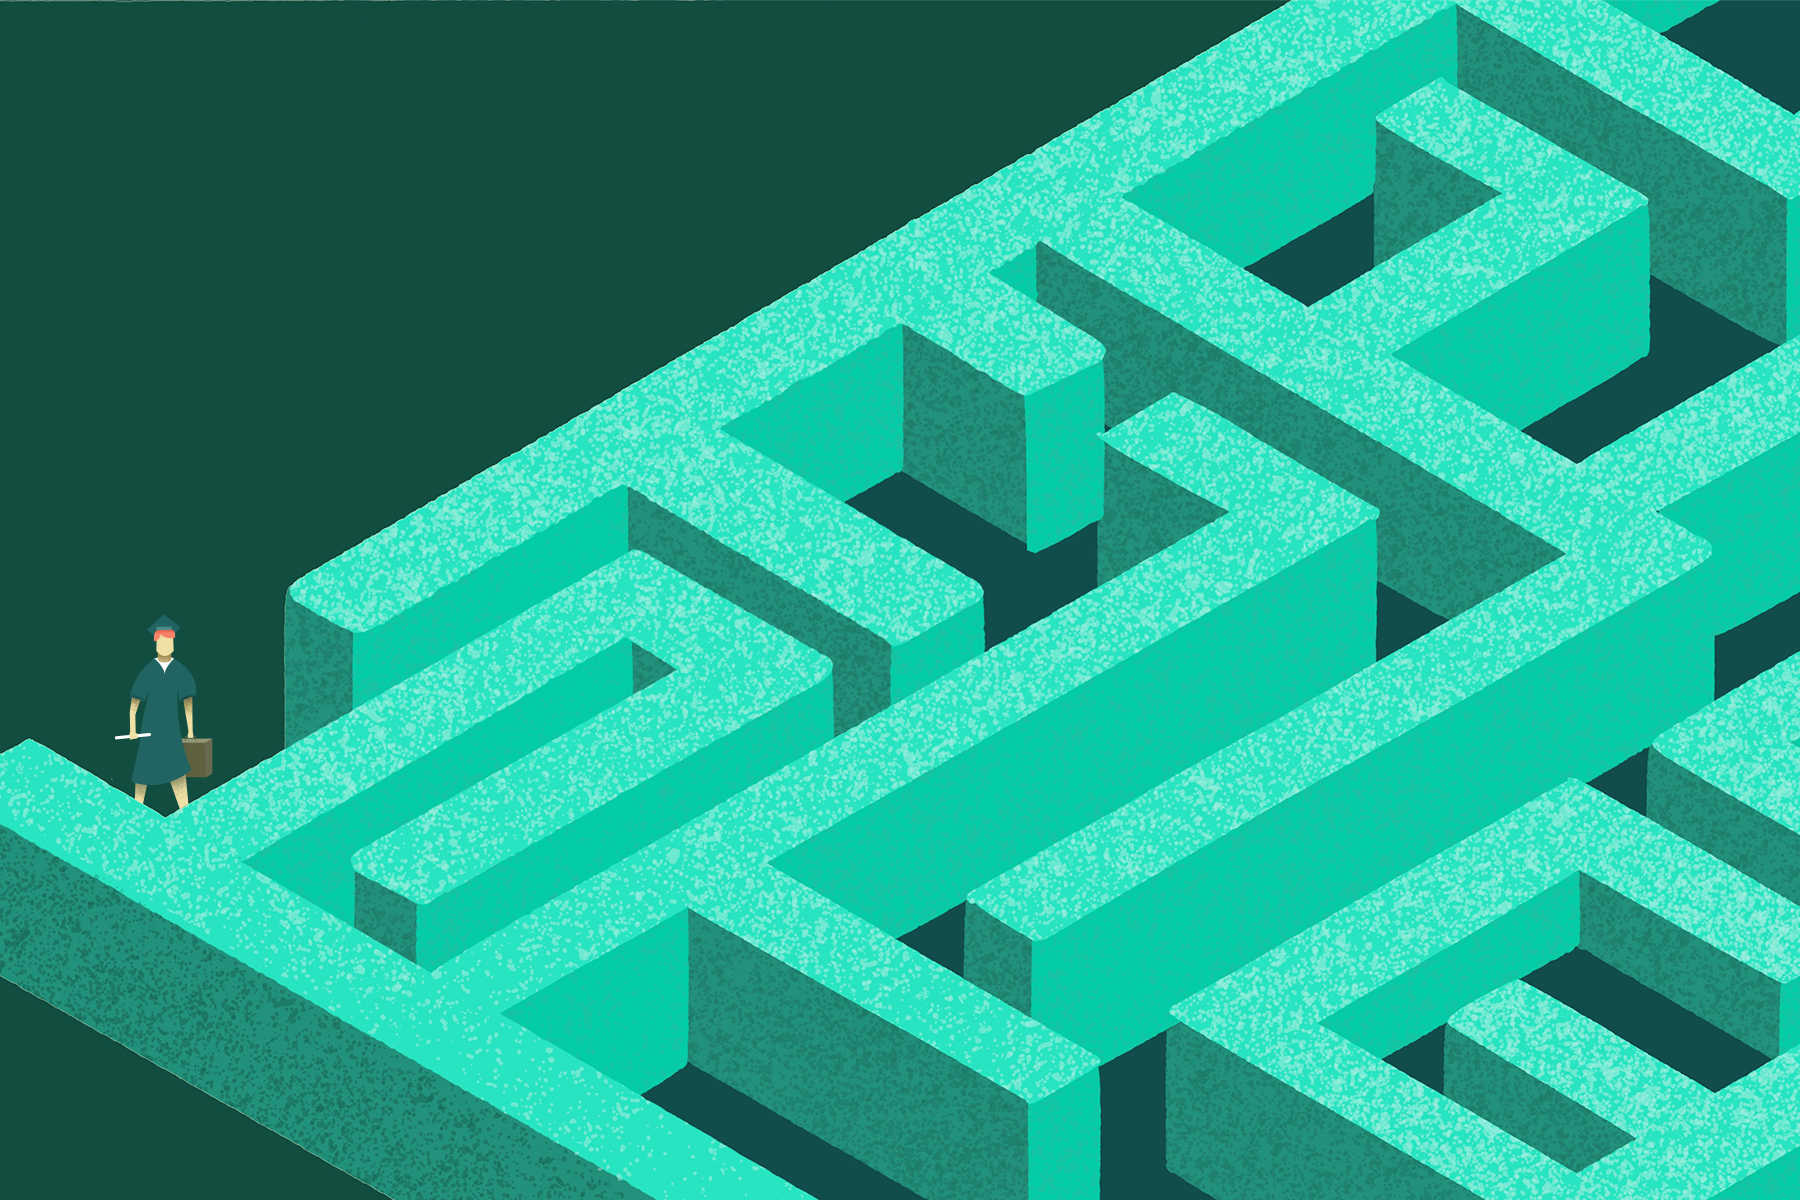 An illustration of a maze for an article about finding a job after college.